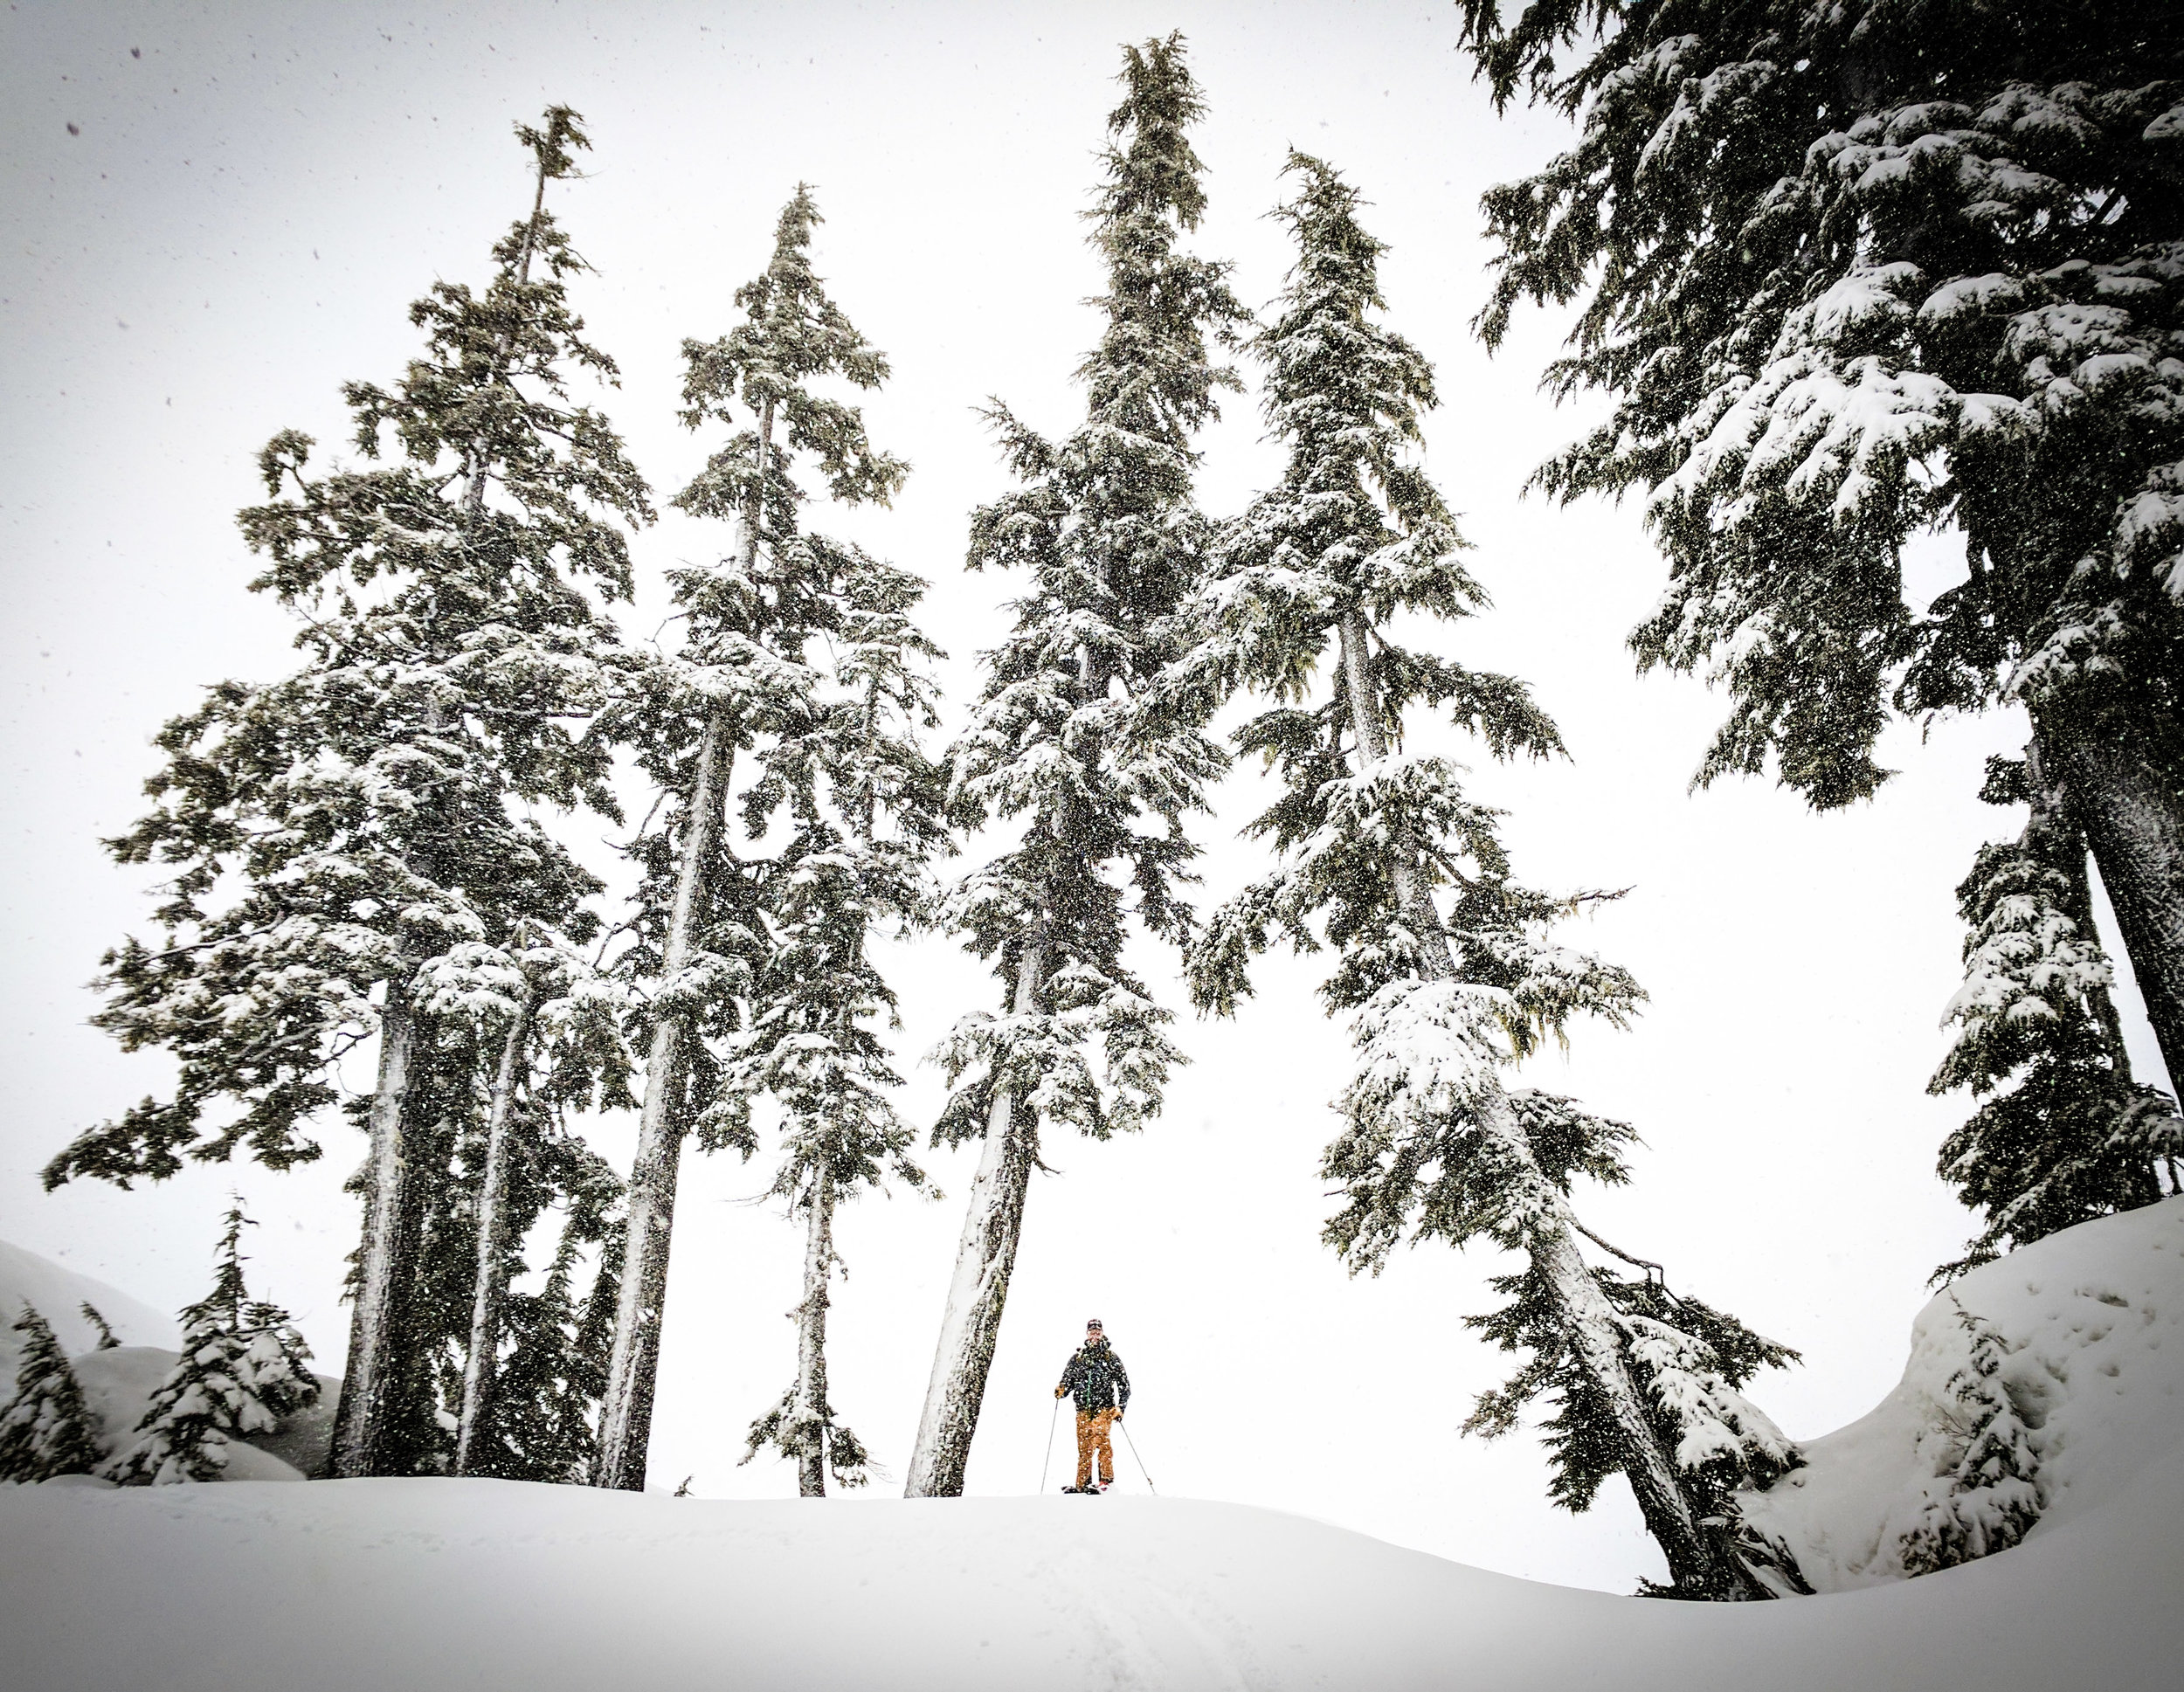 Splitboarding is the answer. The journey is the reward. (pic courtesy of Zach Birmingham)